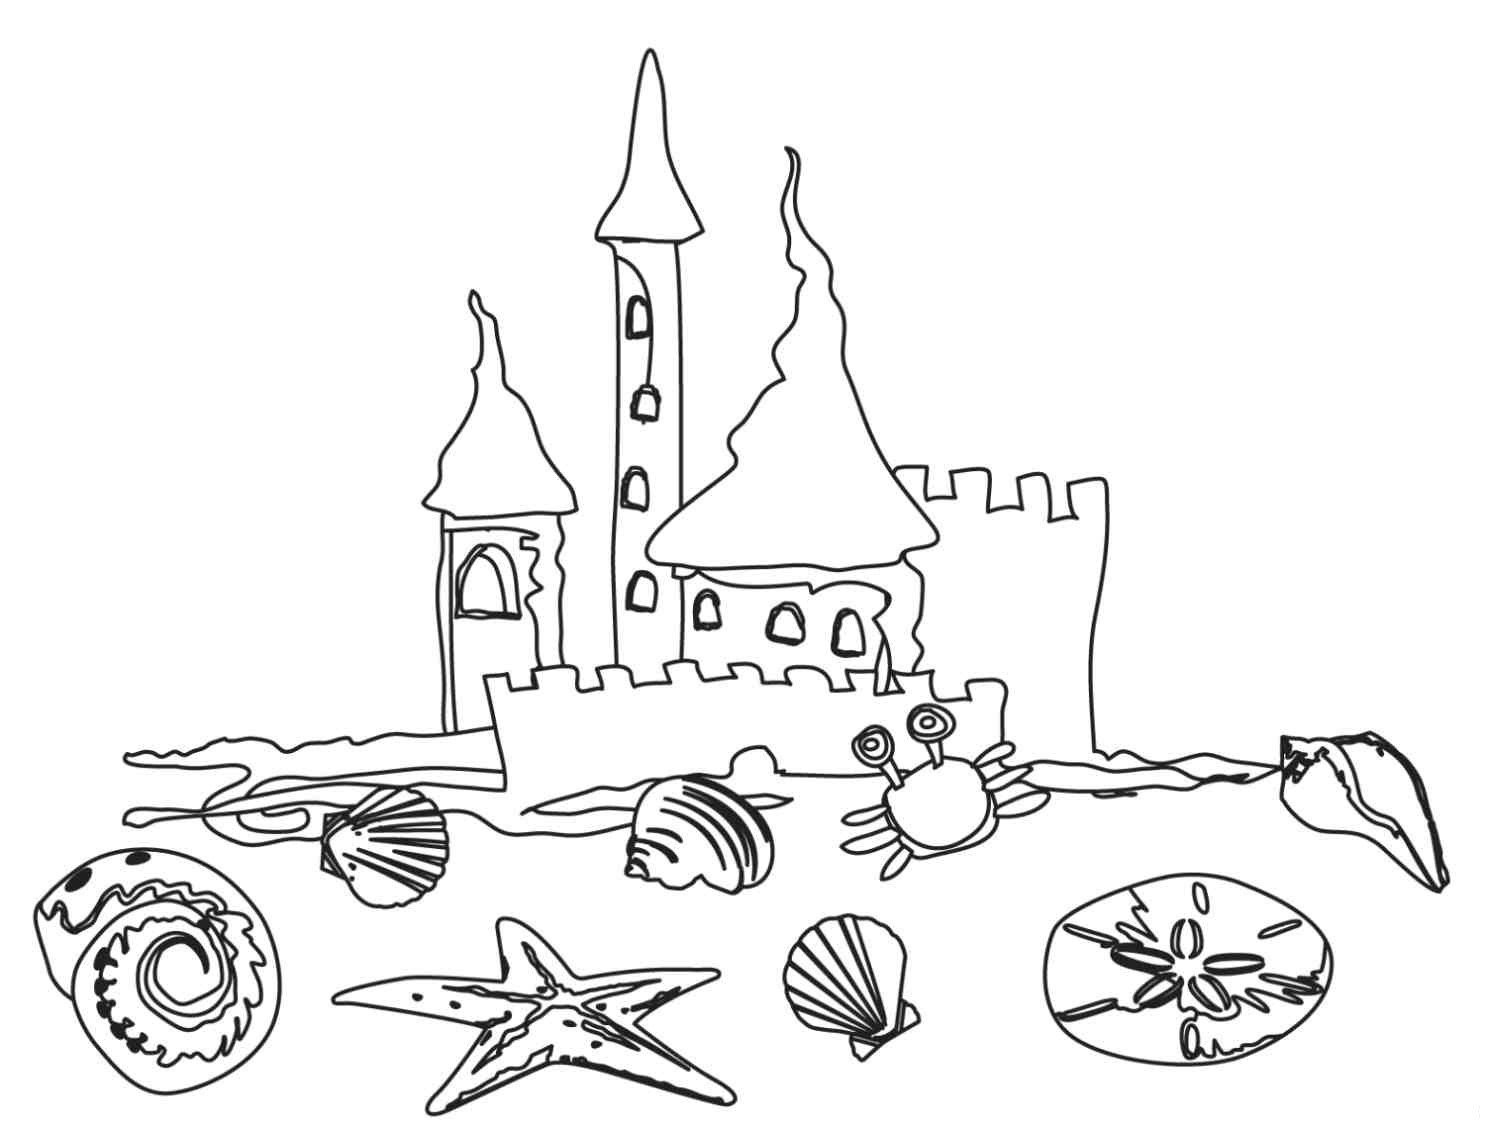 Best ideas about Beach Free Coloring Pages . Save or Pin Beach Coloring Pages Beach Scenes & Activities Now.